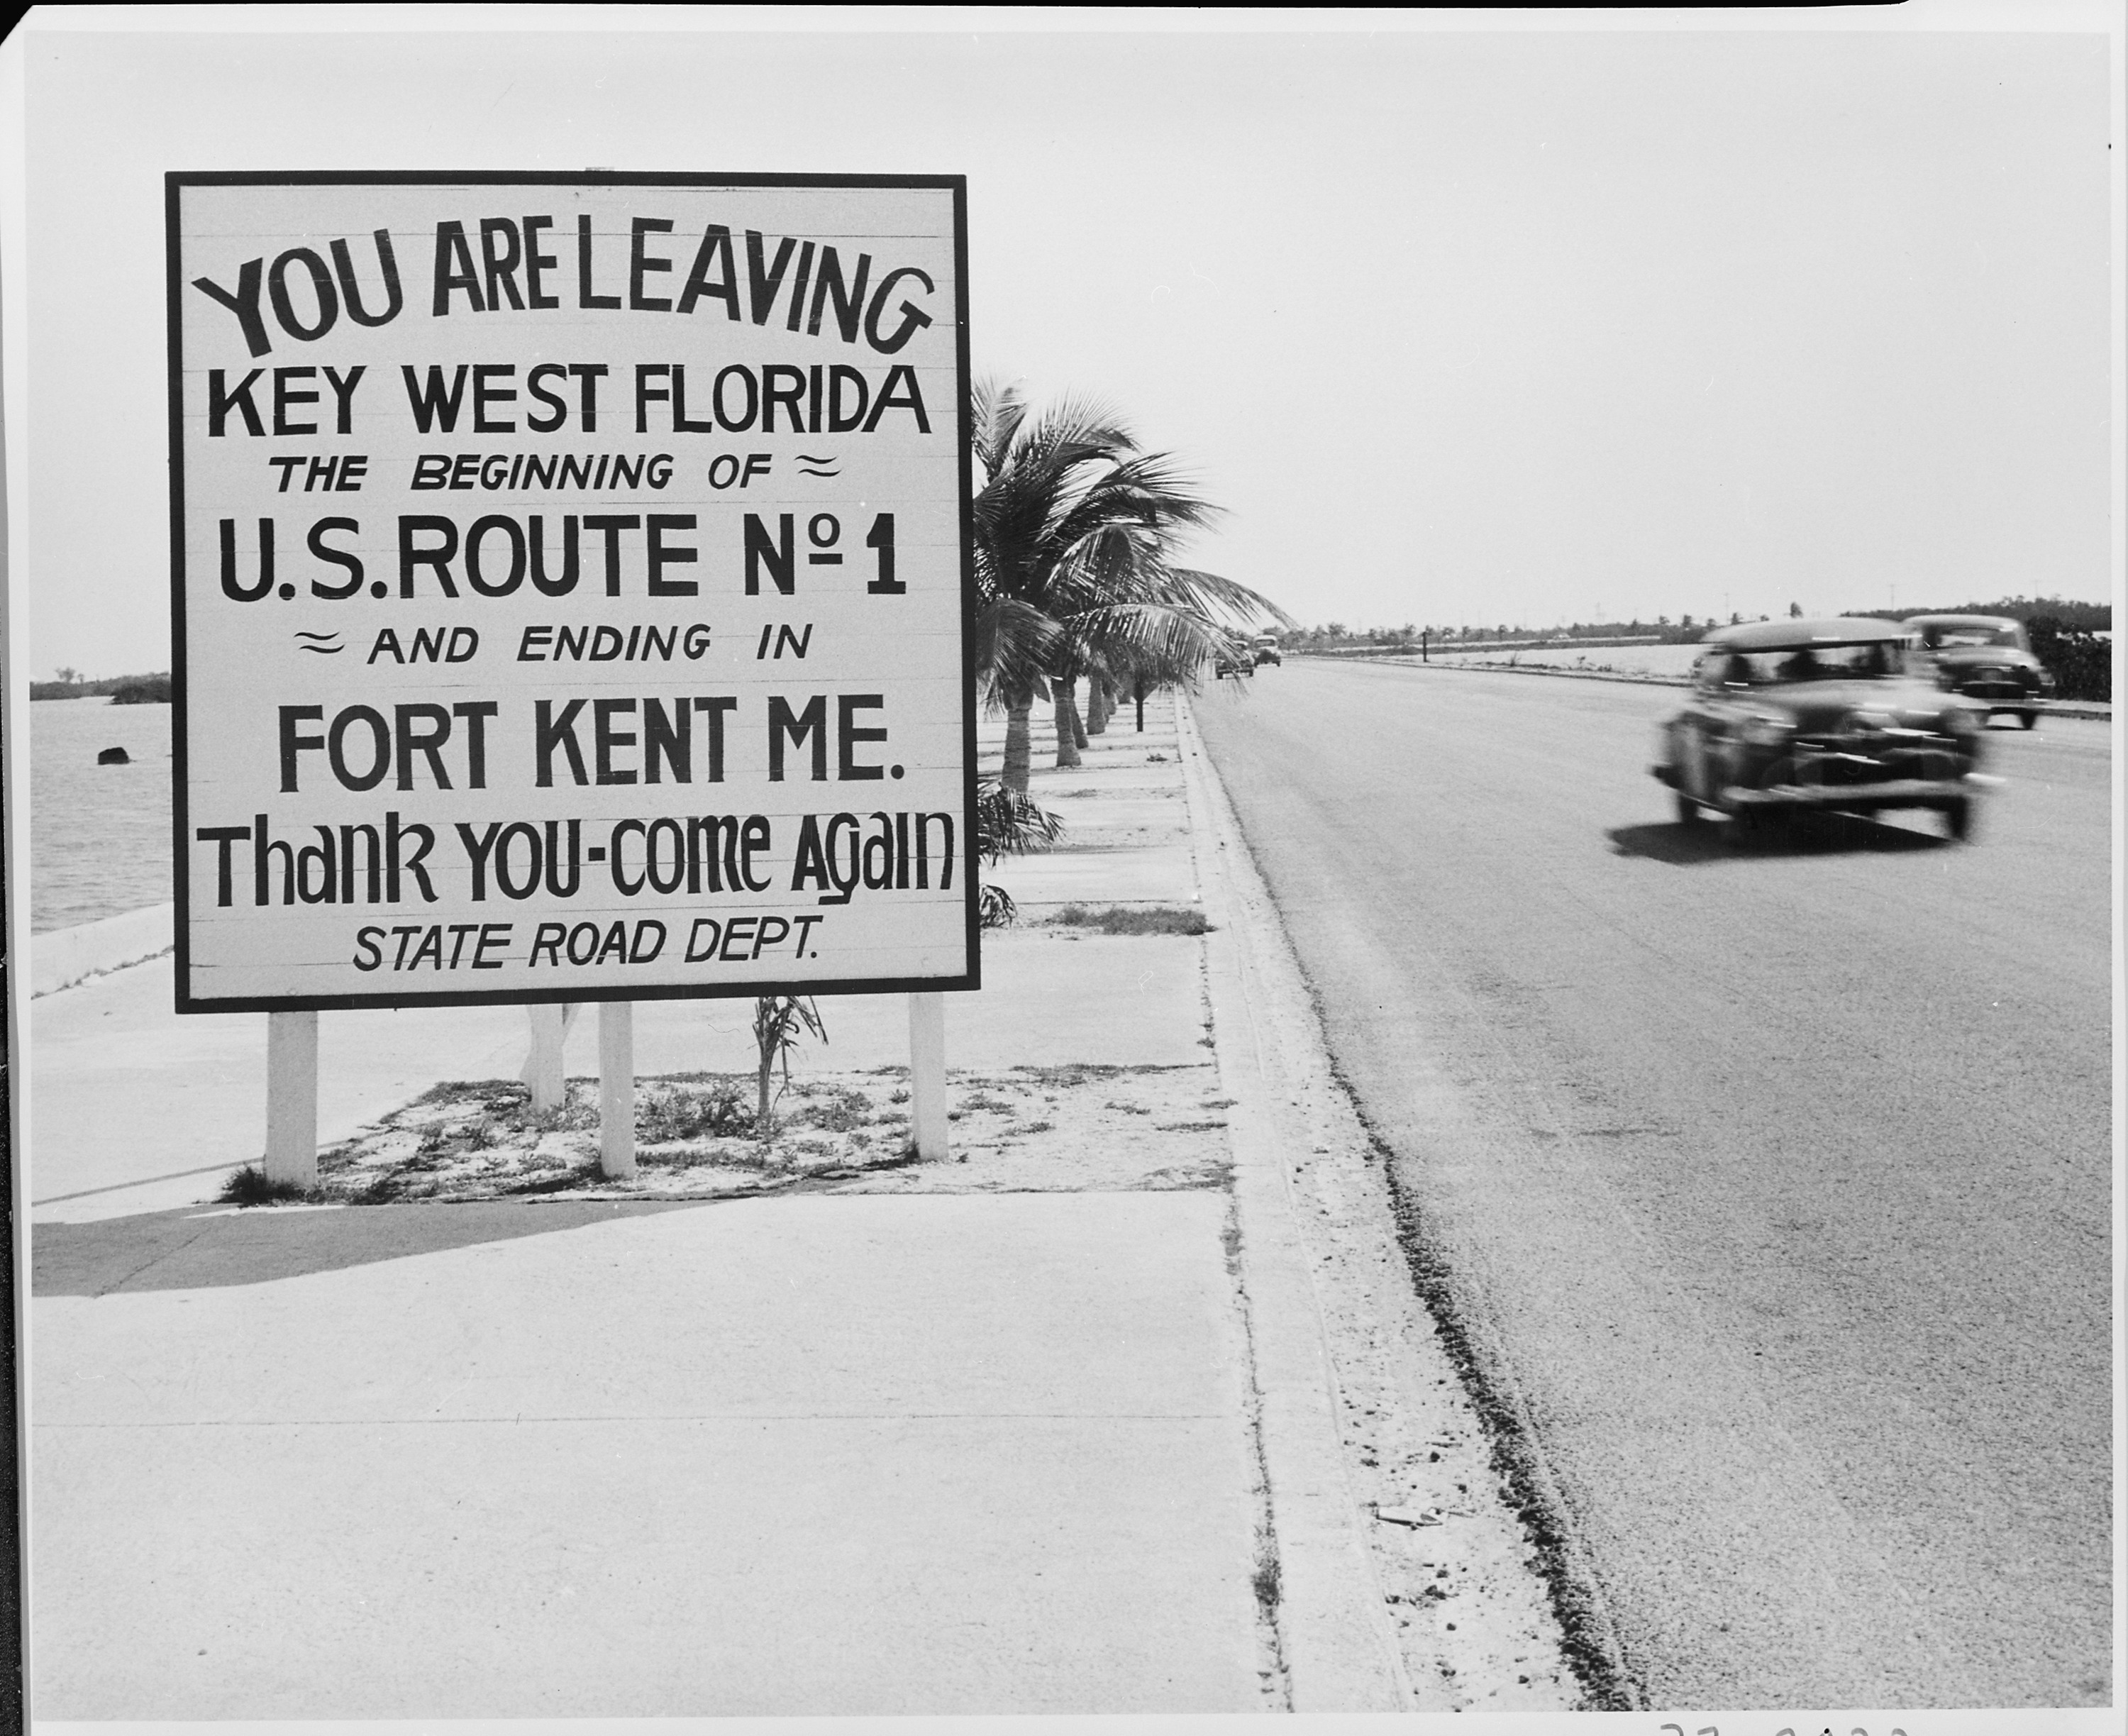 US-1 in the 50s